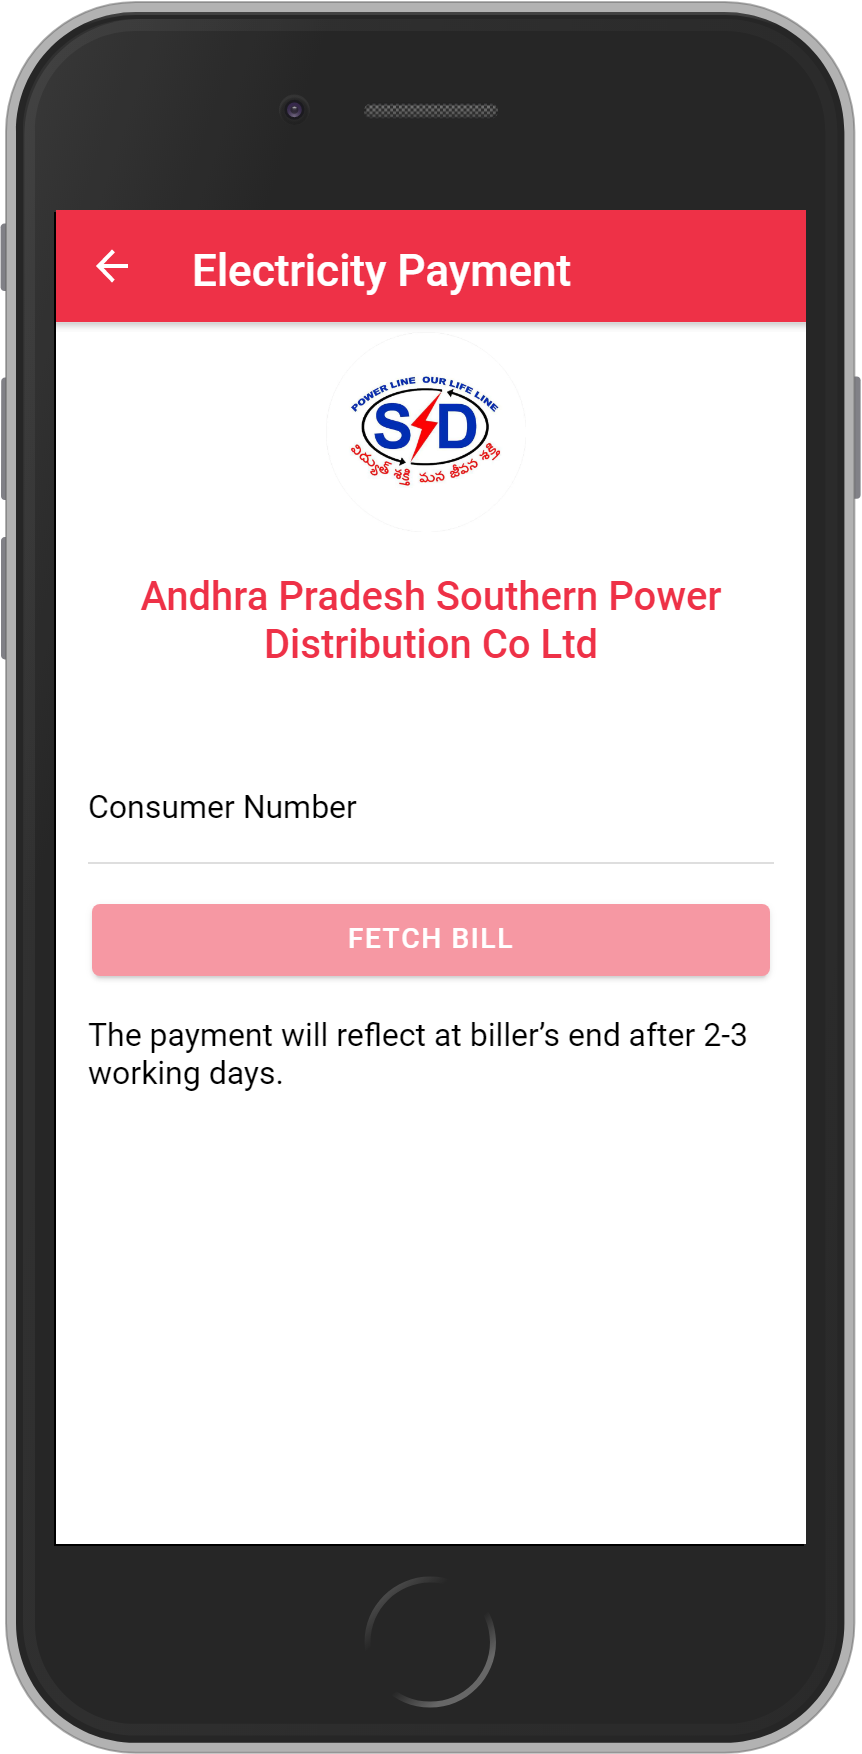 Get UNLIMITED <b>0.1%</b> CASHBACK on Southern Power AP Bill Payment.